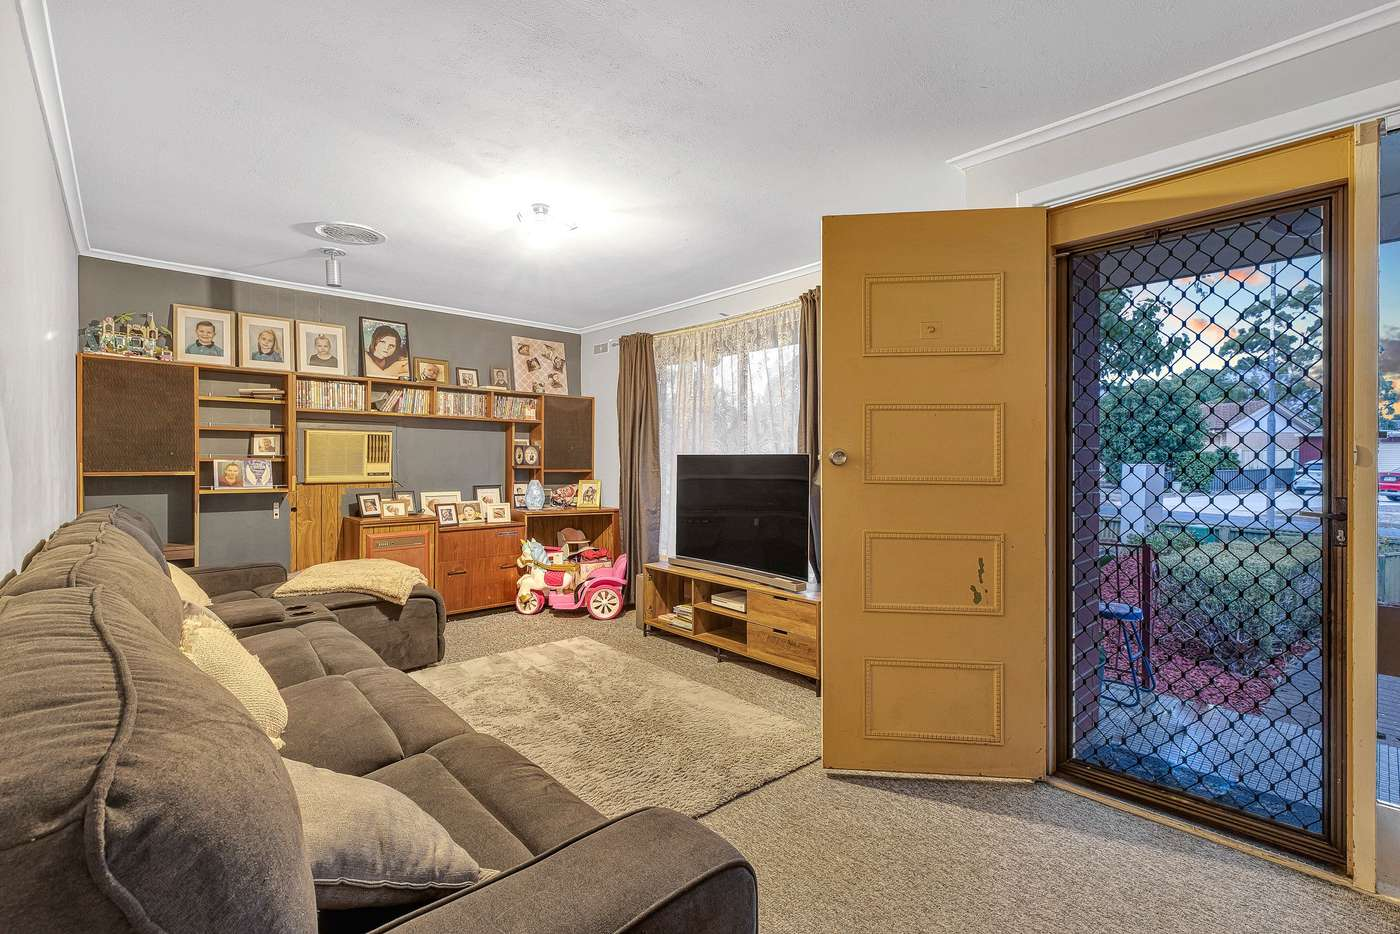 Fifth view of Homely house listing, 5 Turnworth Street, Elizabeth Downs SA 5113